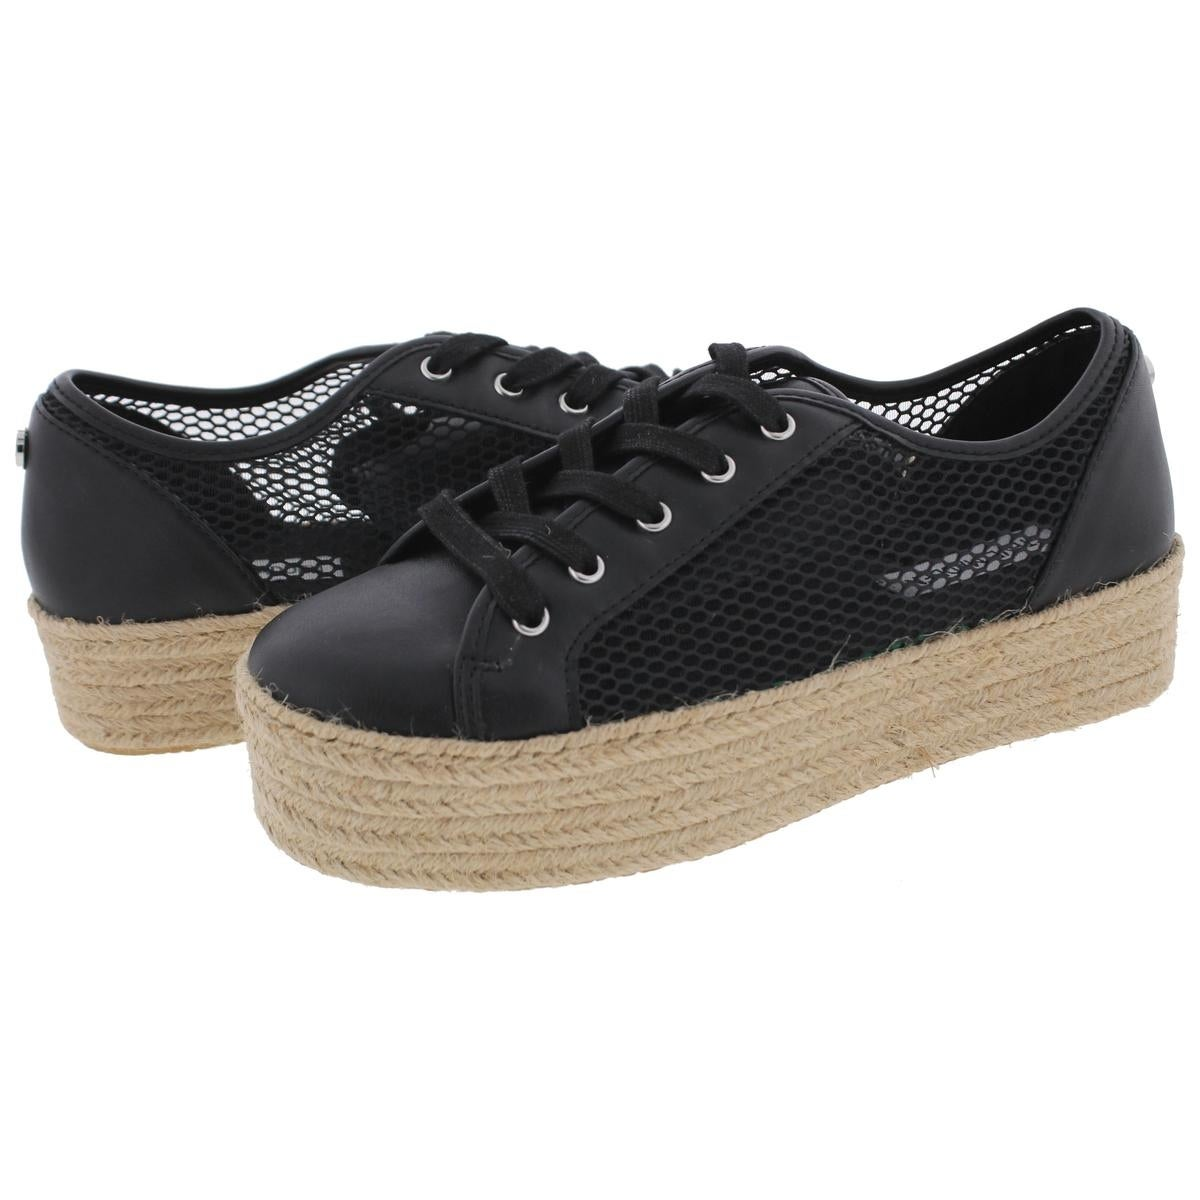 ef9e75557aa Shop Steve Madden Womens Mars Fashion Sneakers Espadrille Platform - Free  Shipping On Orders Over  45 - Overstock - 20199726